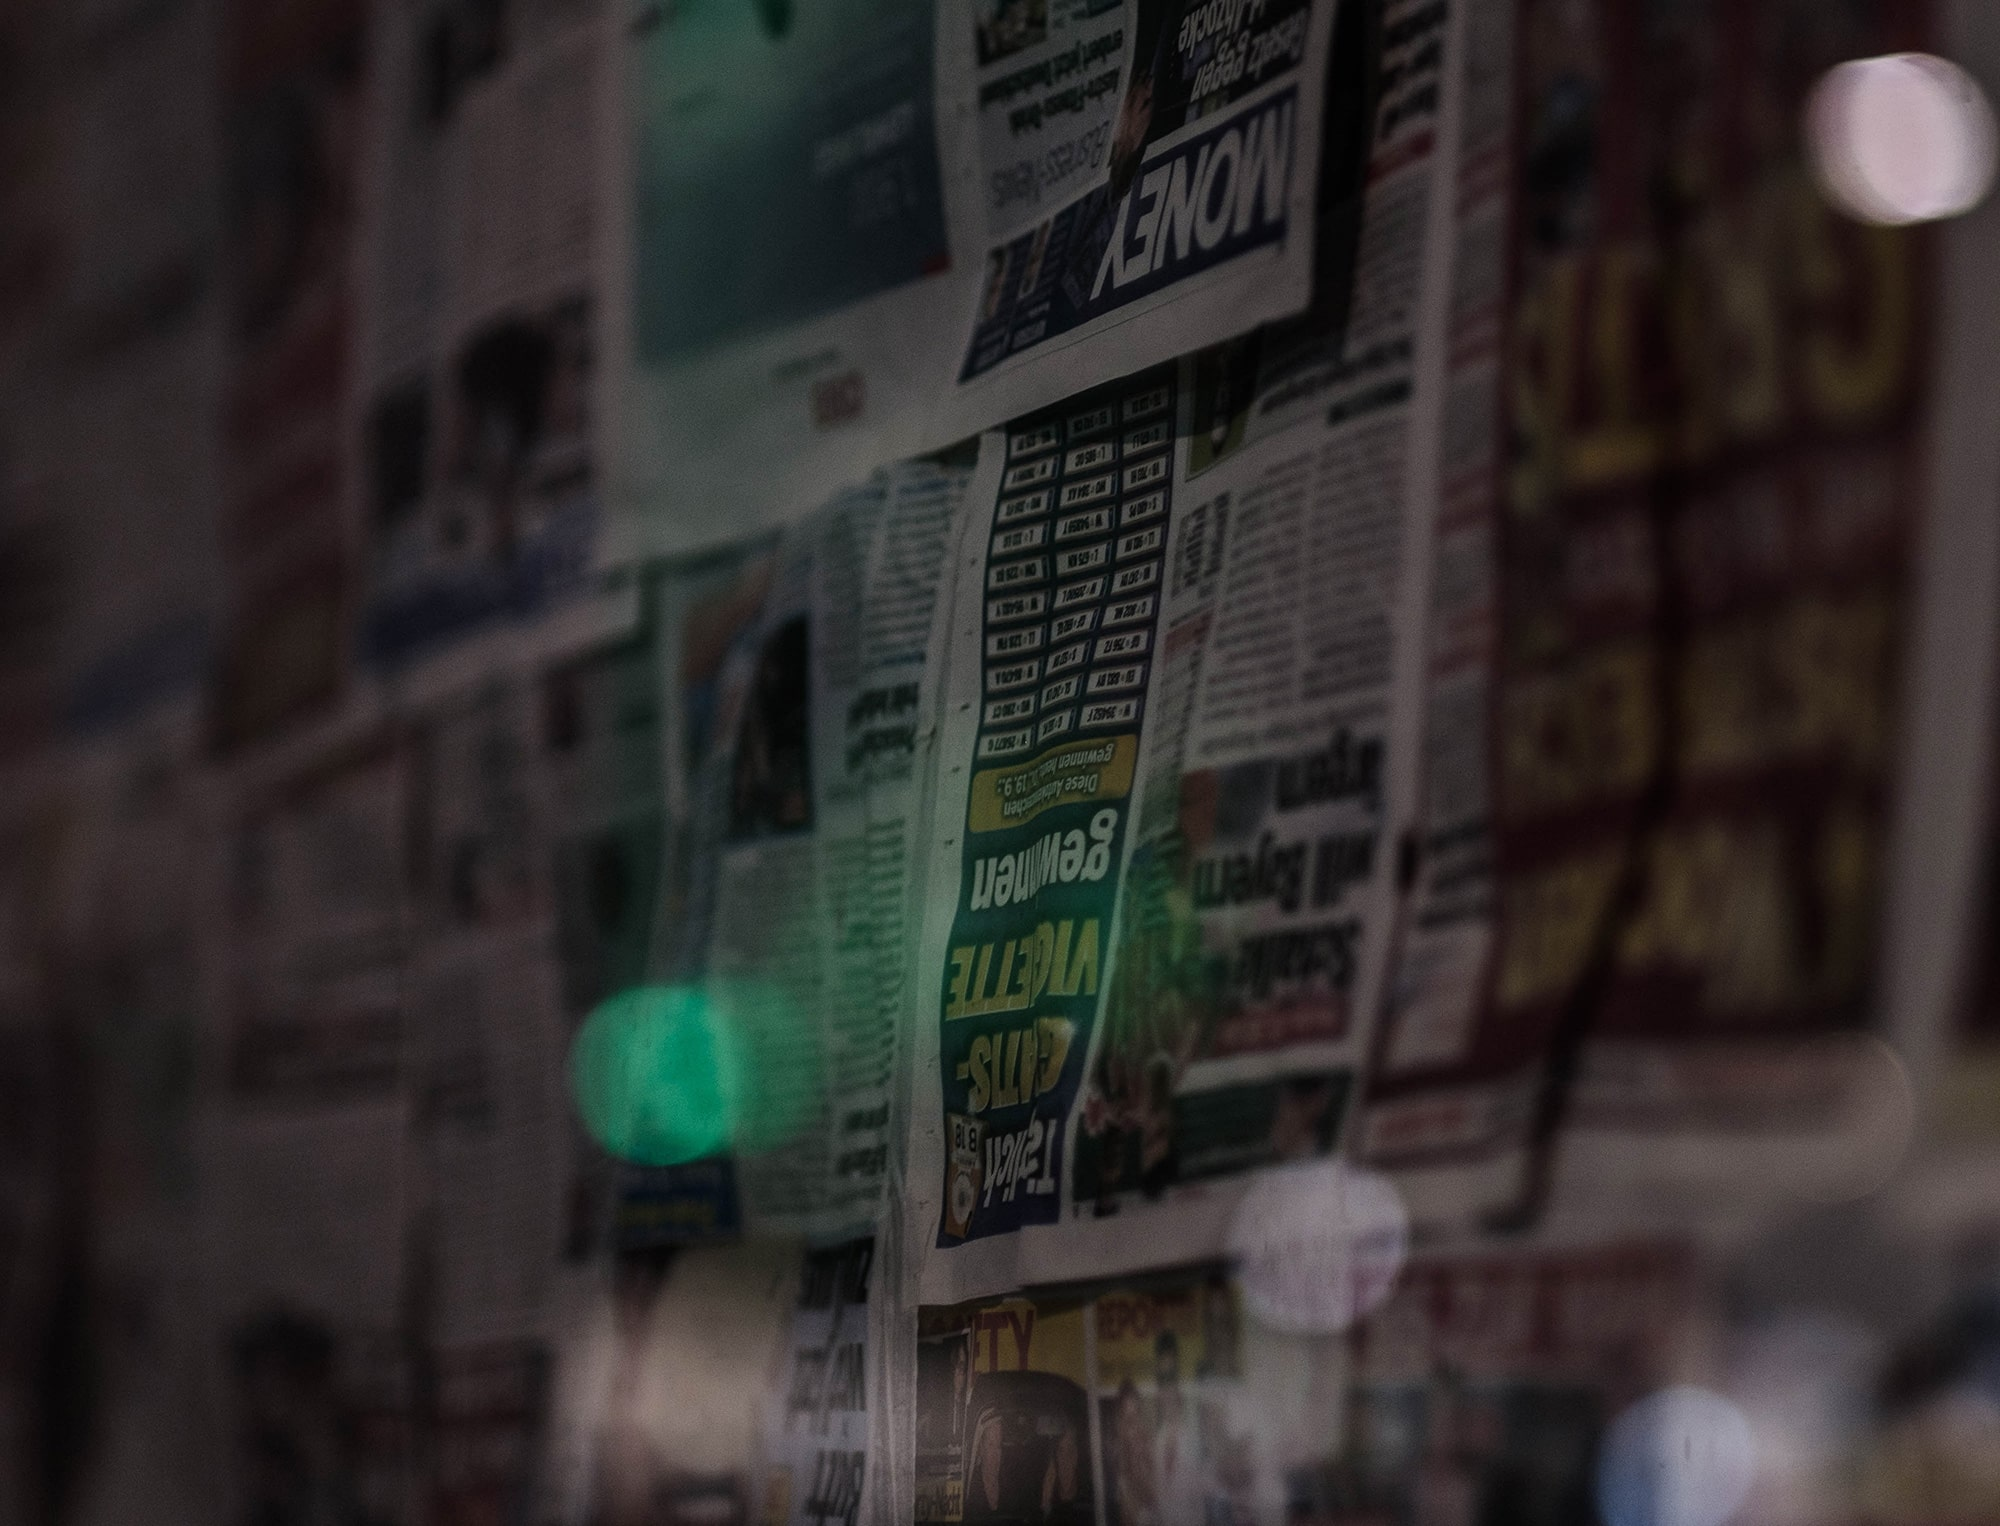 Newspapers on the wall